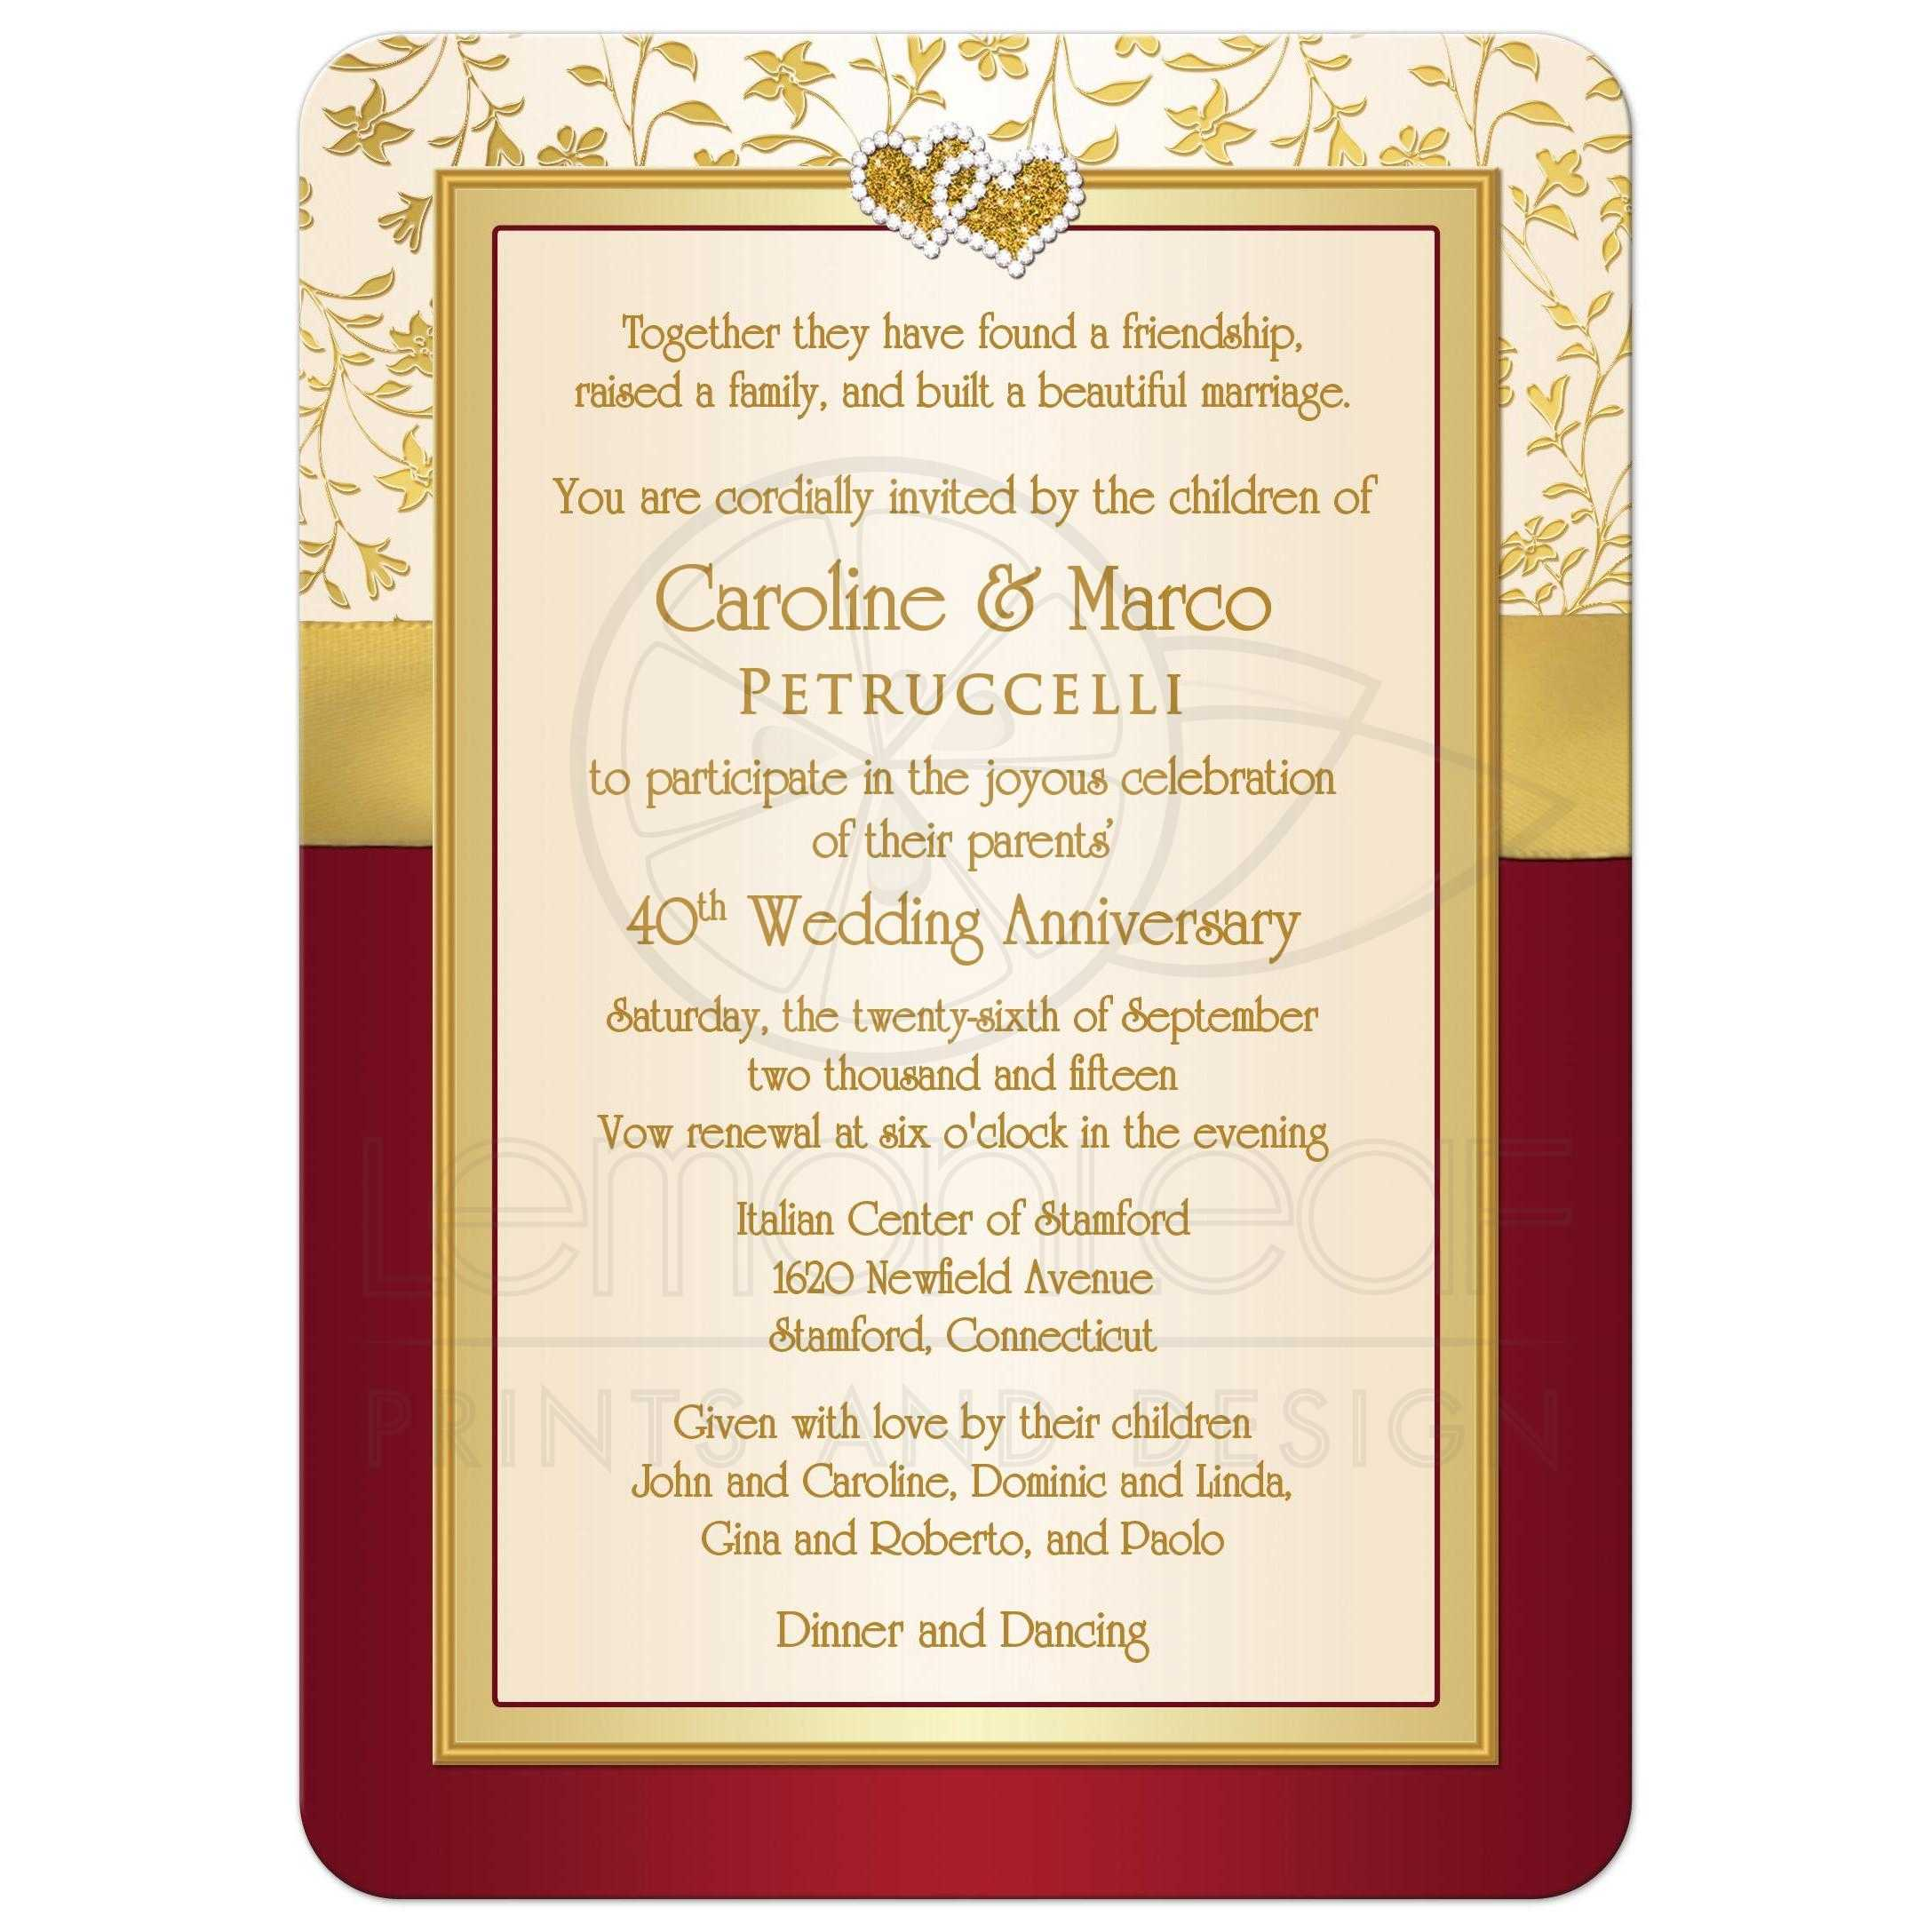 40th Wedding Anniversary Invitation Red Ivory Gold Floral